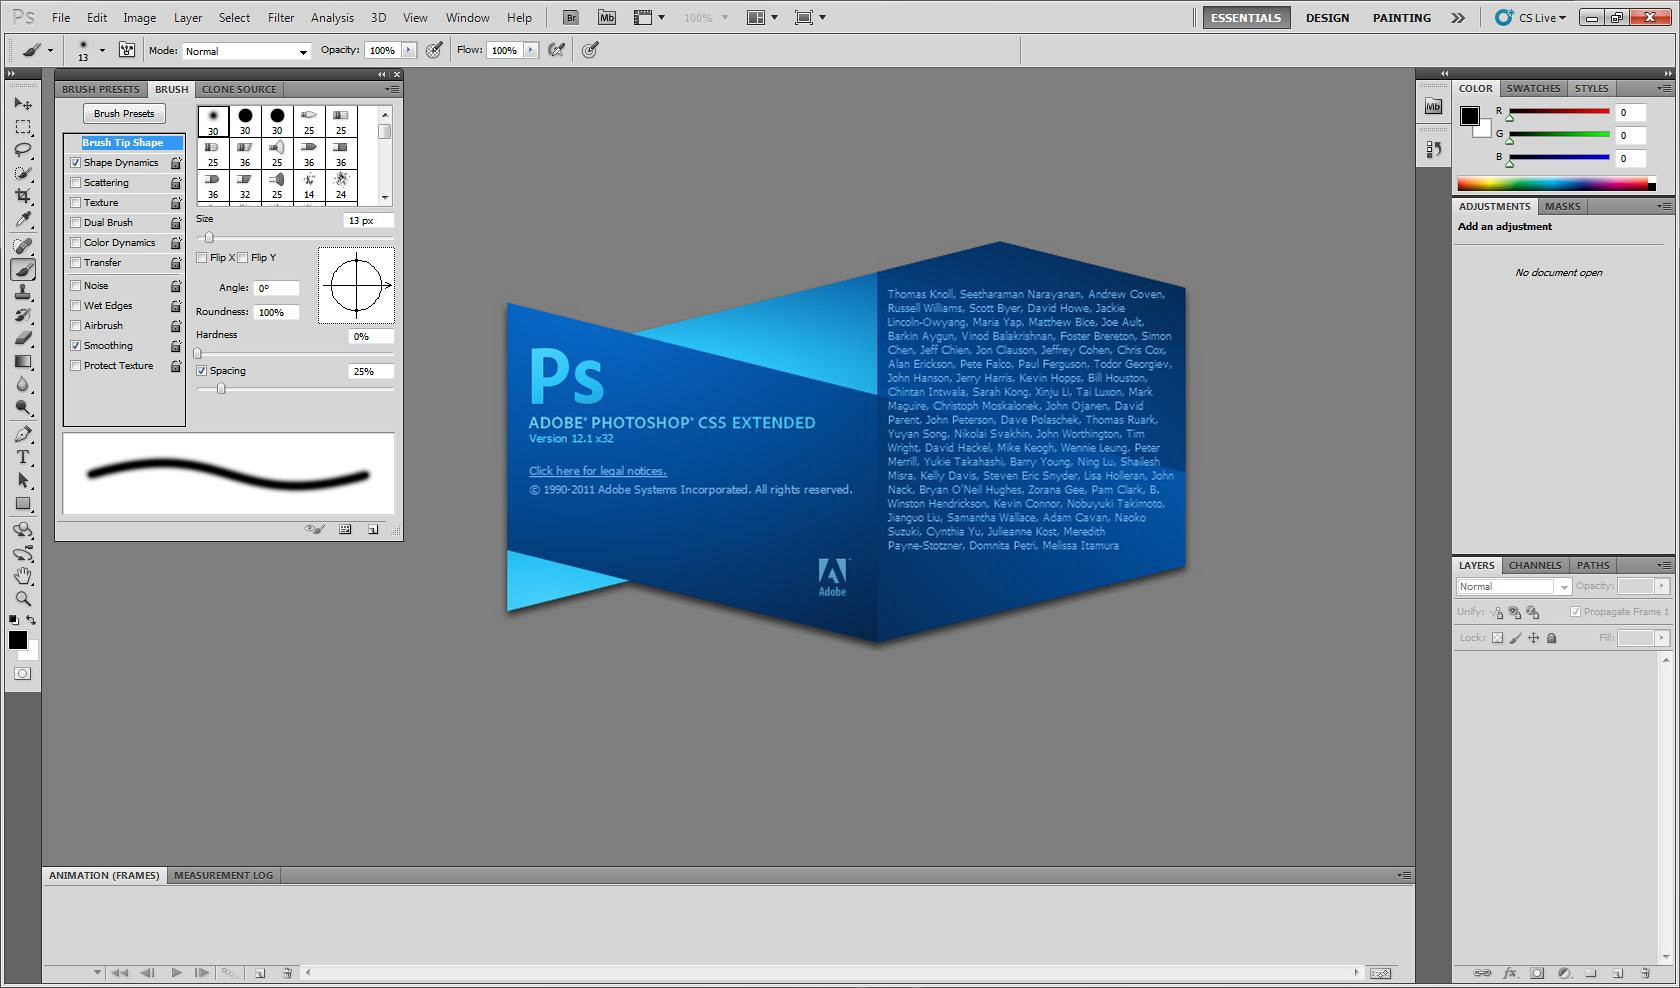 adobe photoshop software free download for windows 7 full version